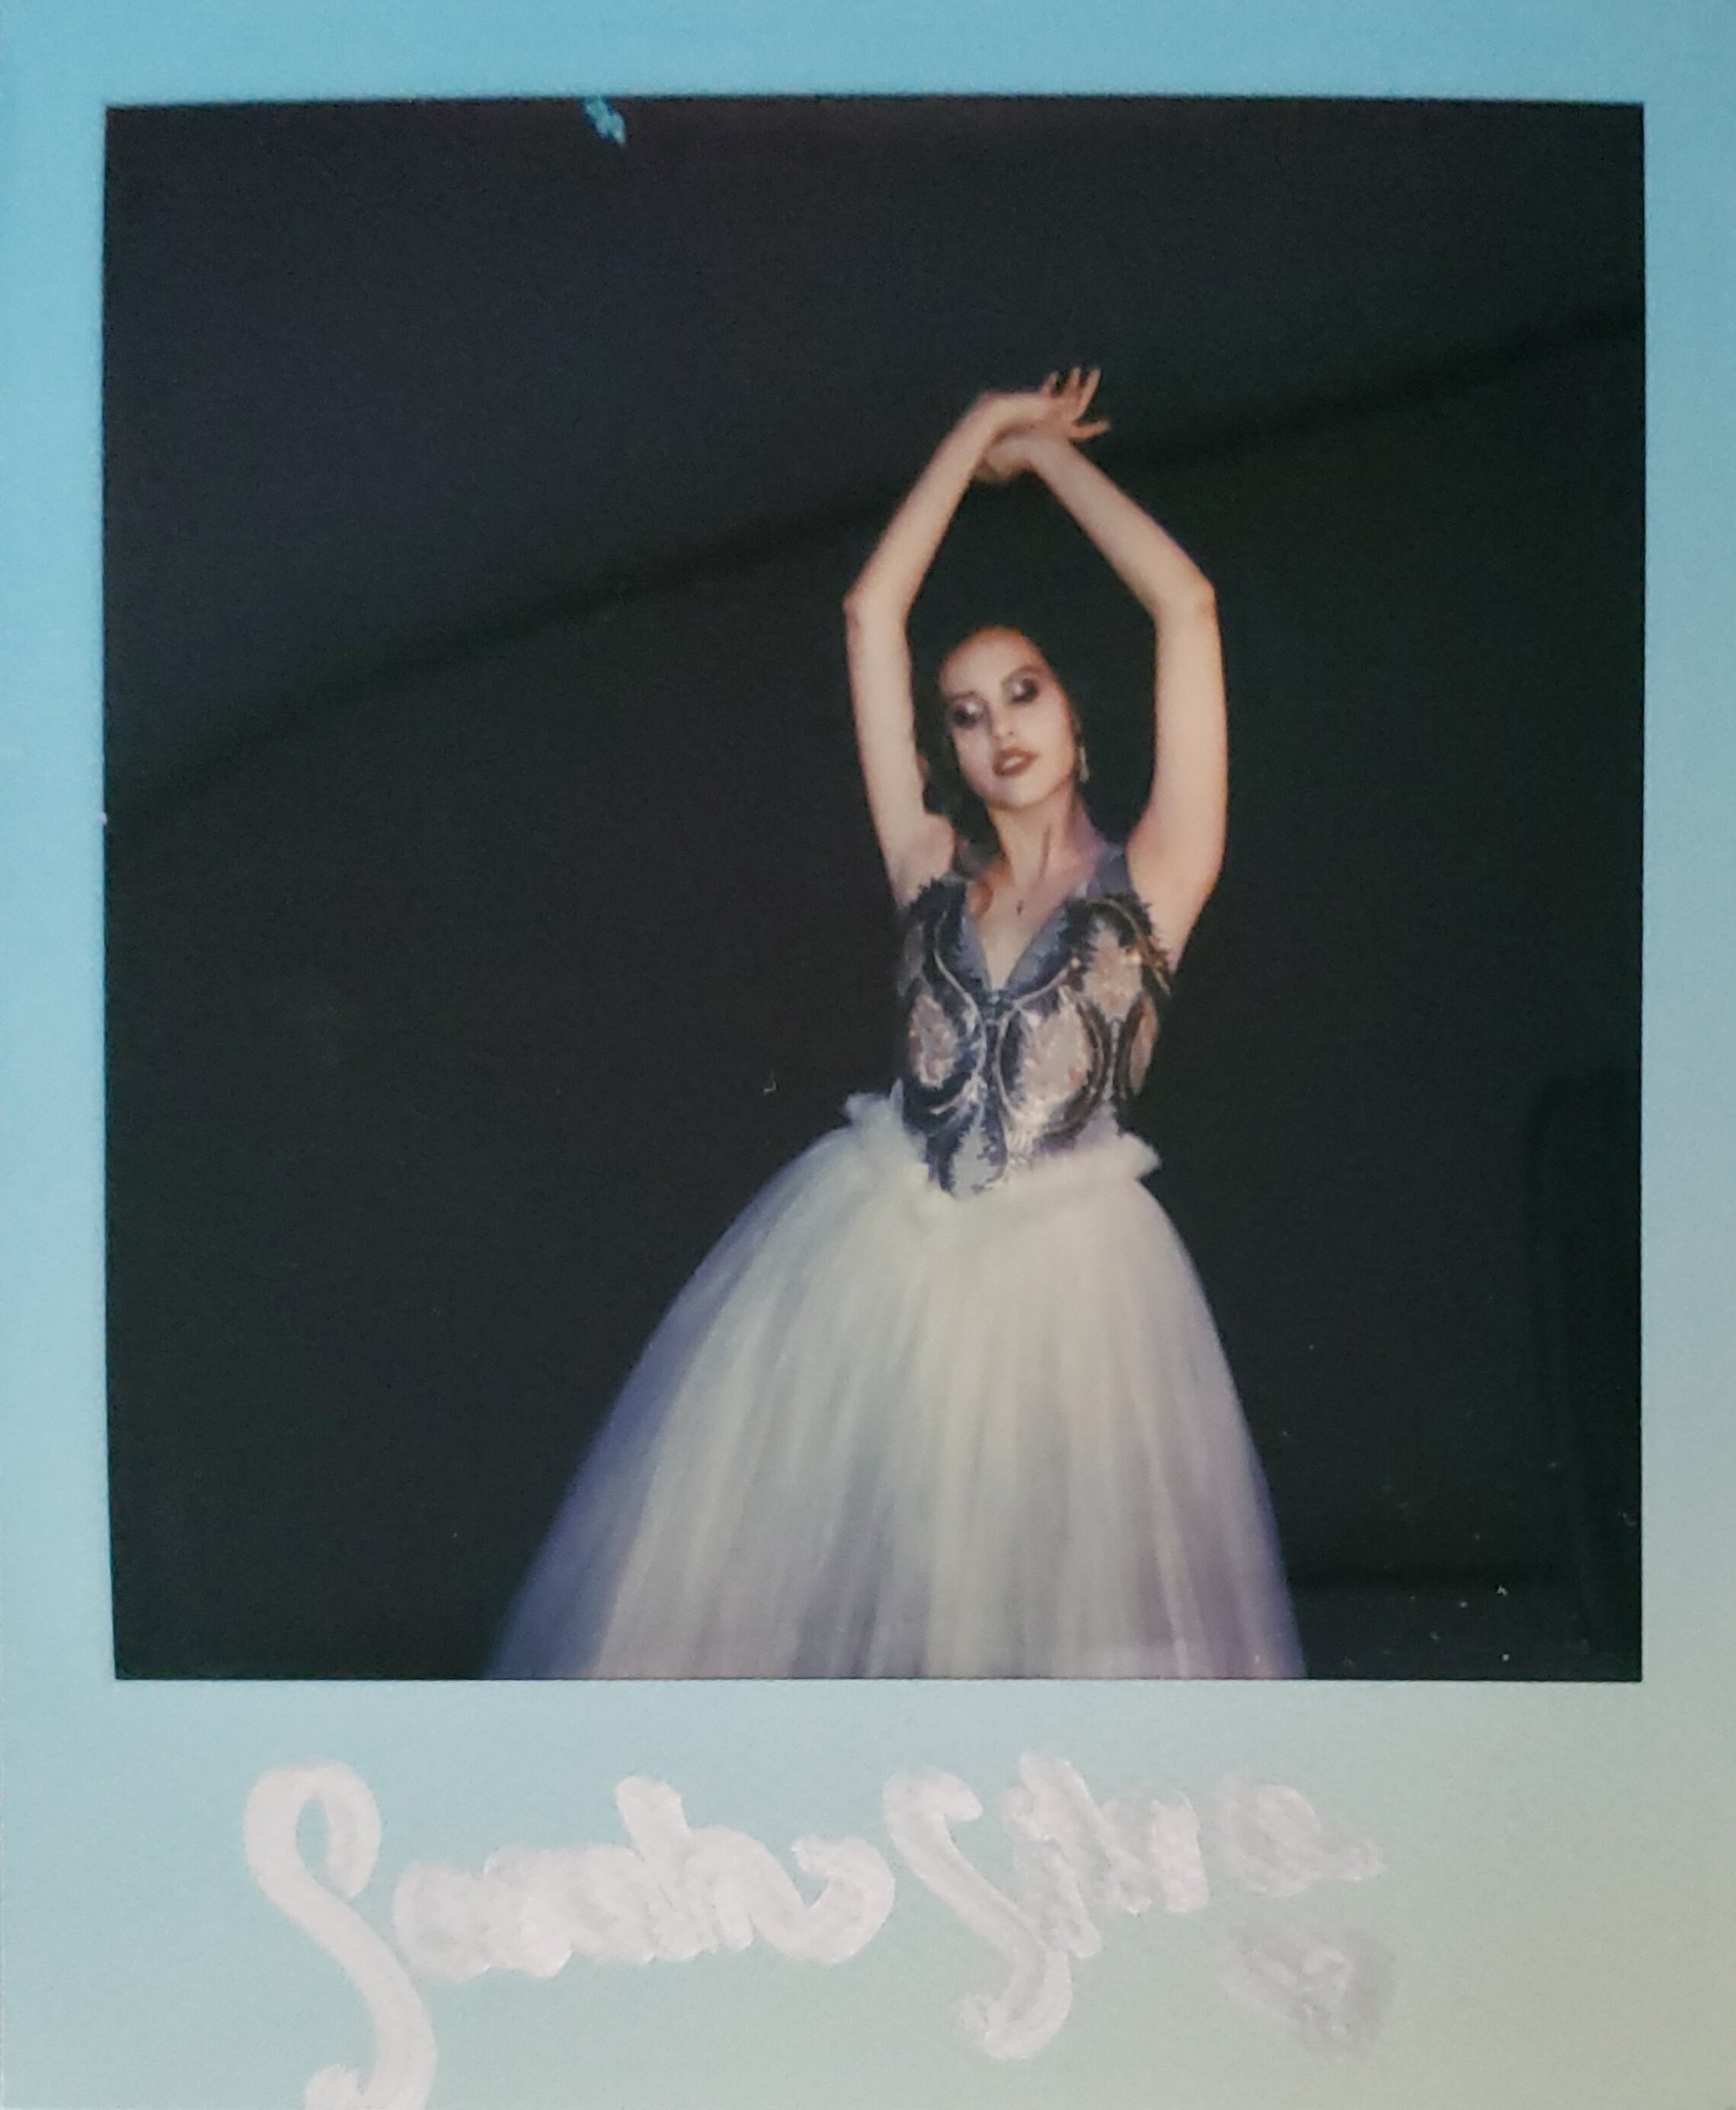 #PolaroidOriginals taken by Heather Koepp  Talent:  Sarah Silva